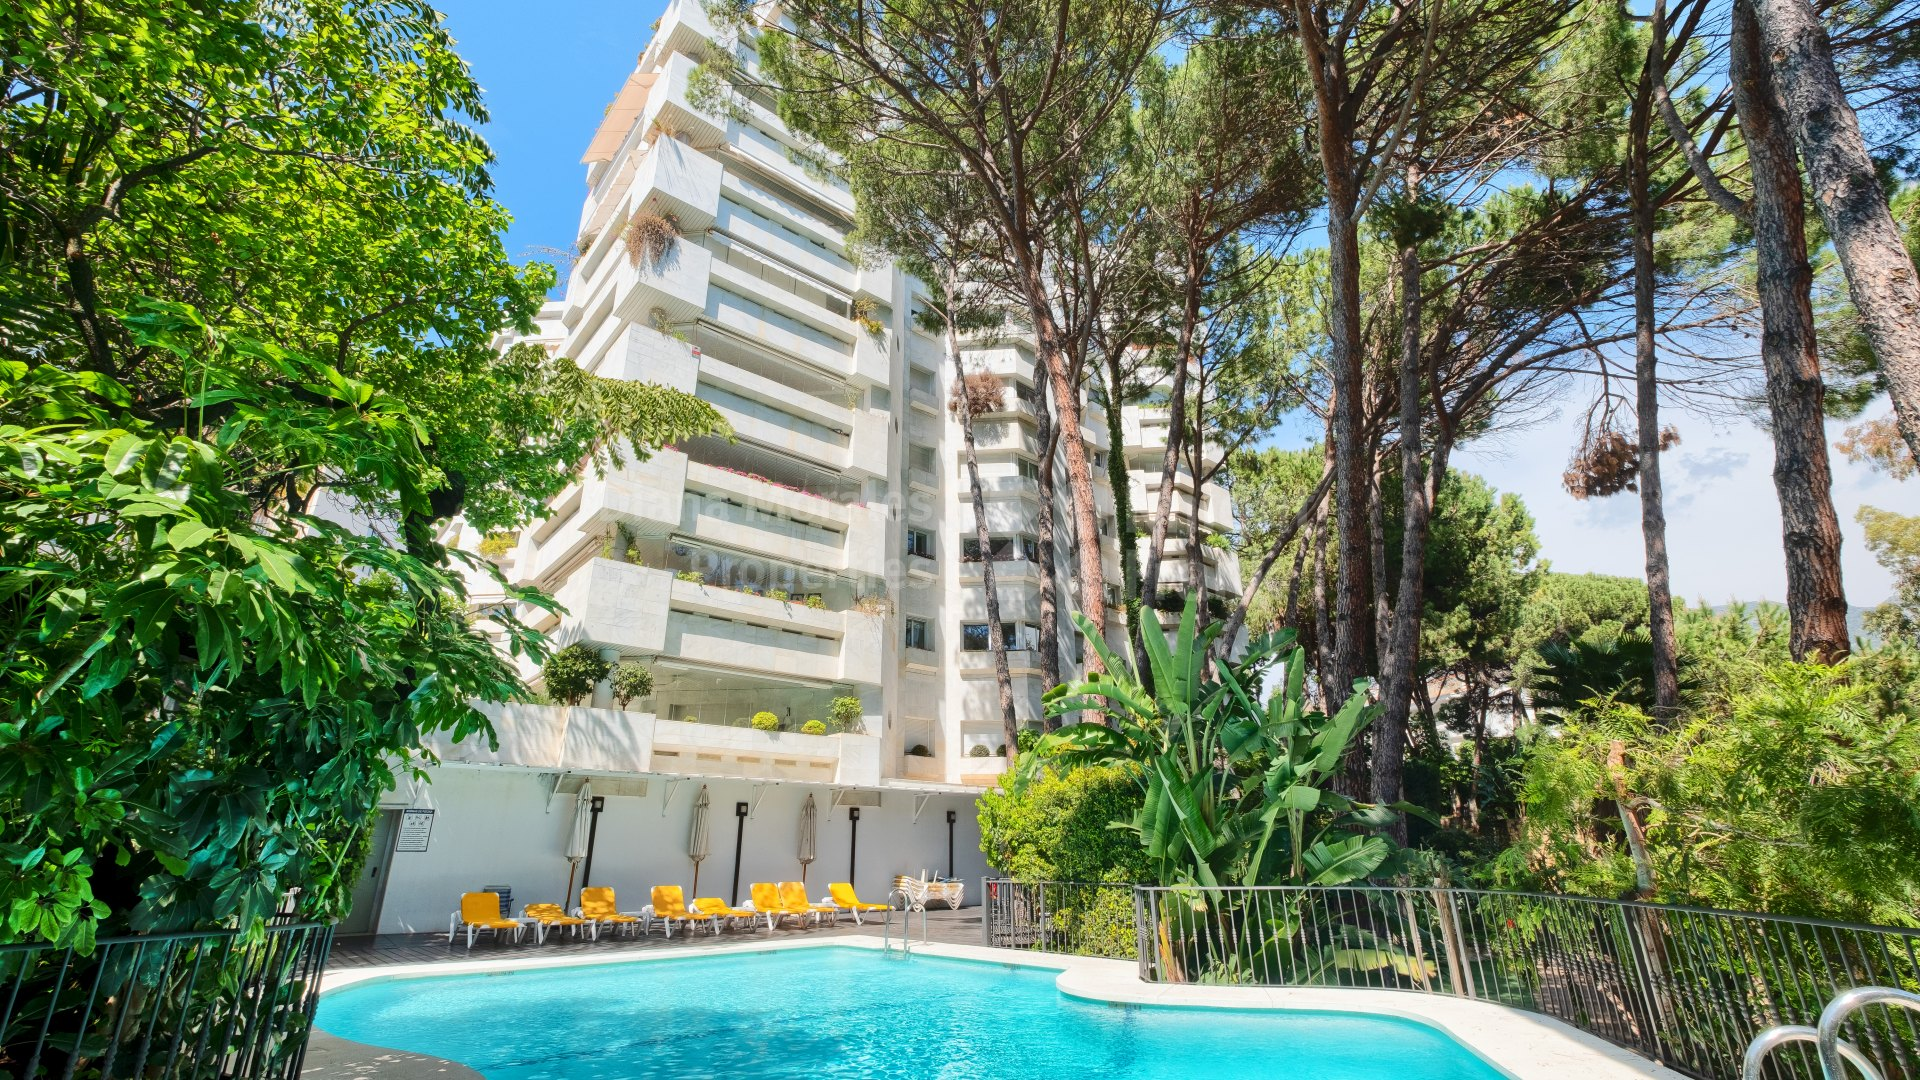 Jardín del Mediterráneo, Beachside apartment for sale in town